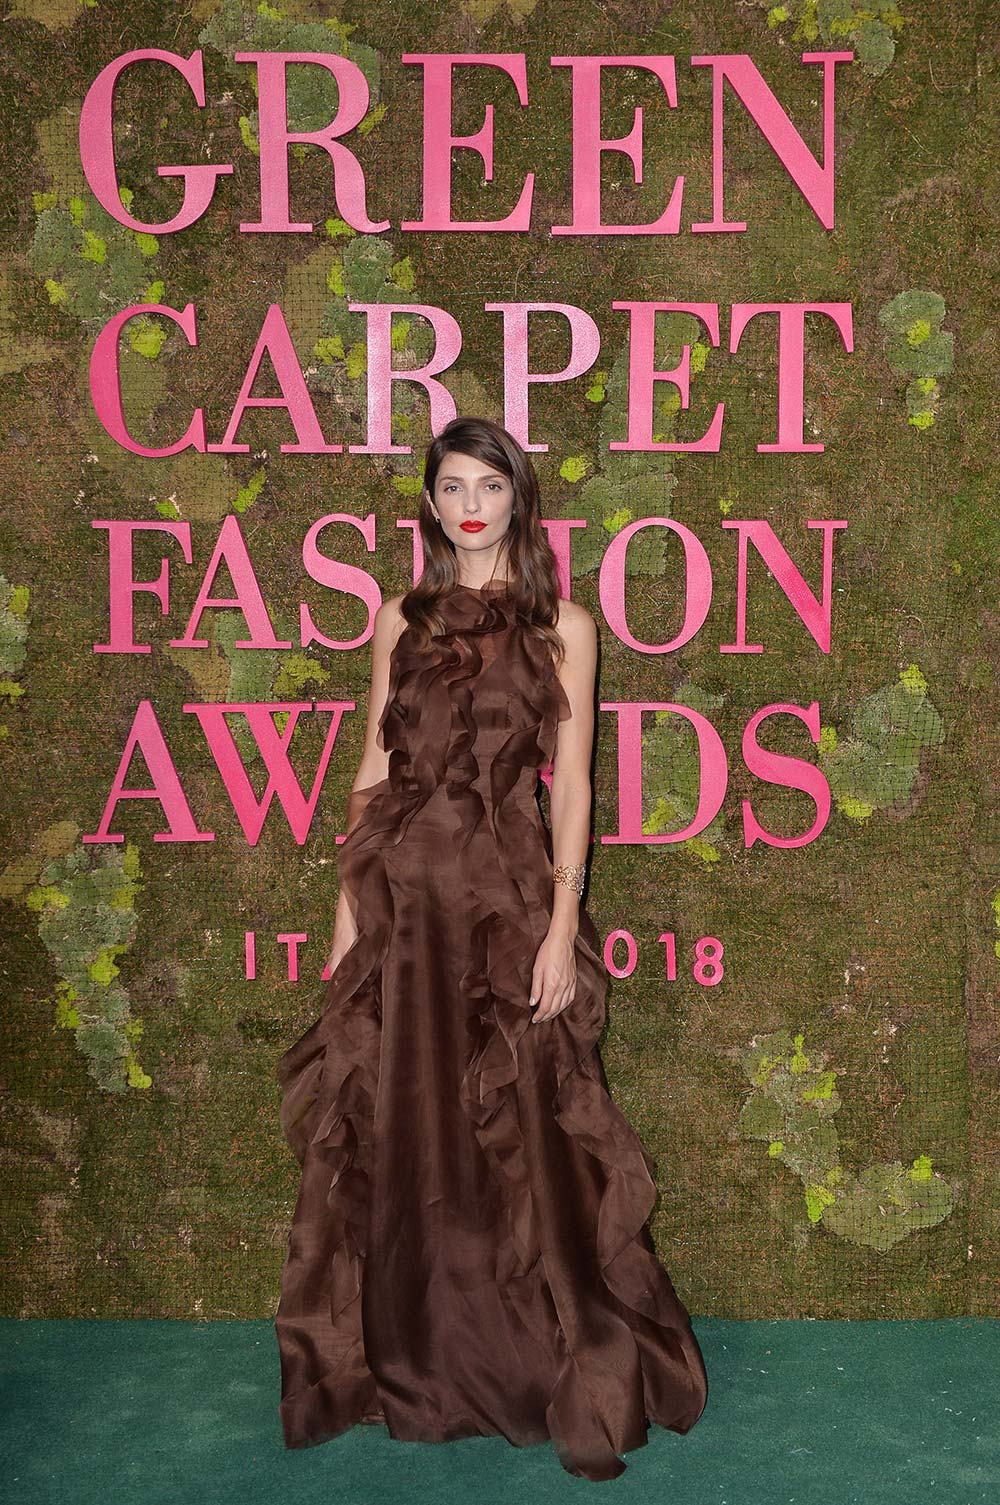 Green Carpet Fashion Awards 2018 - Annabelle Belmondo - Hair & Makeup Massimo Serini Team